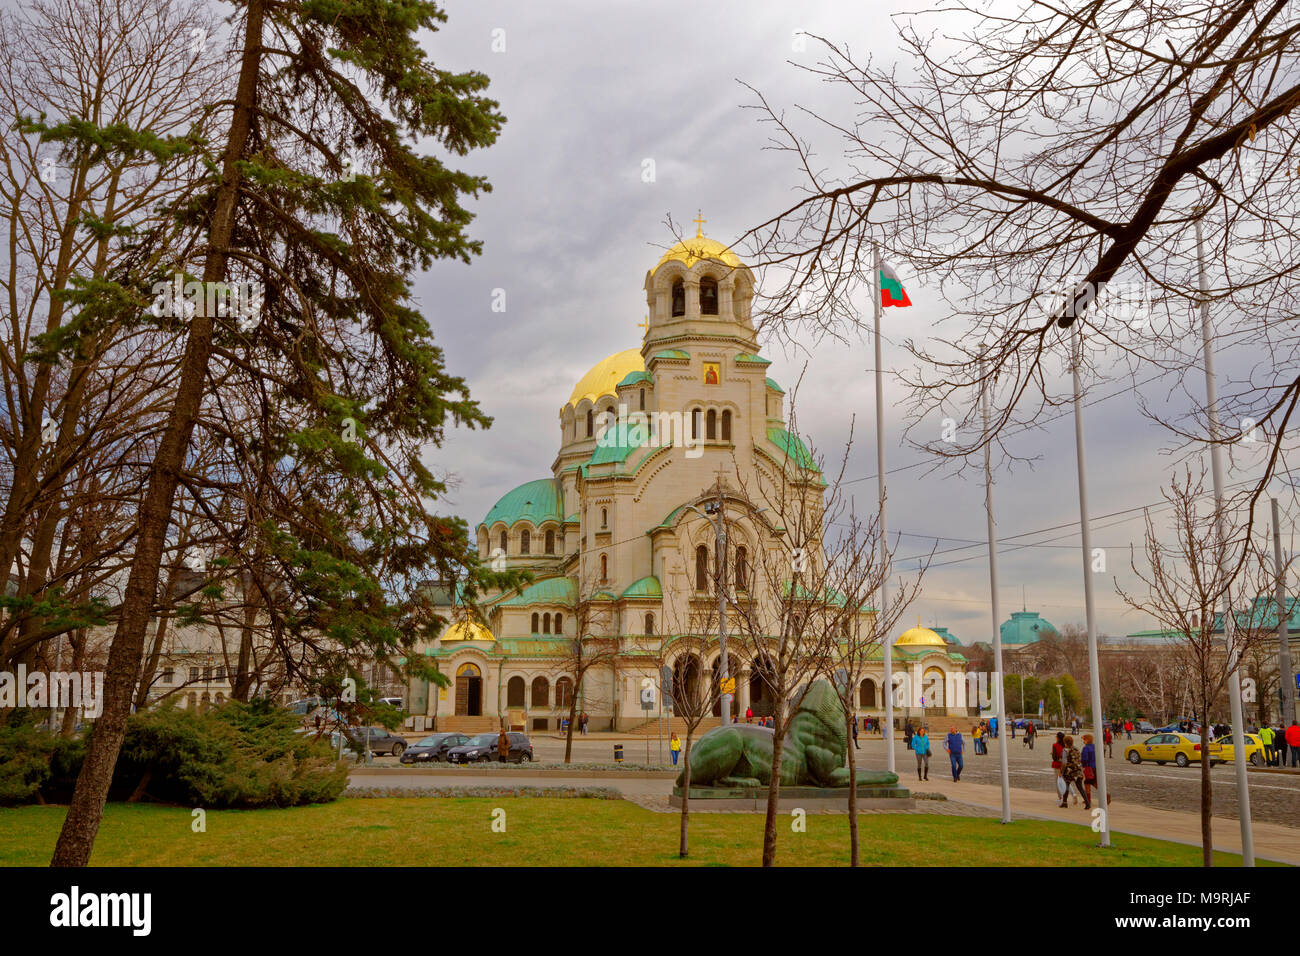 The St. Alexandar Nevski Orthodox Cathedral in Sofia city centre, Bulgaria. - Stock Image